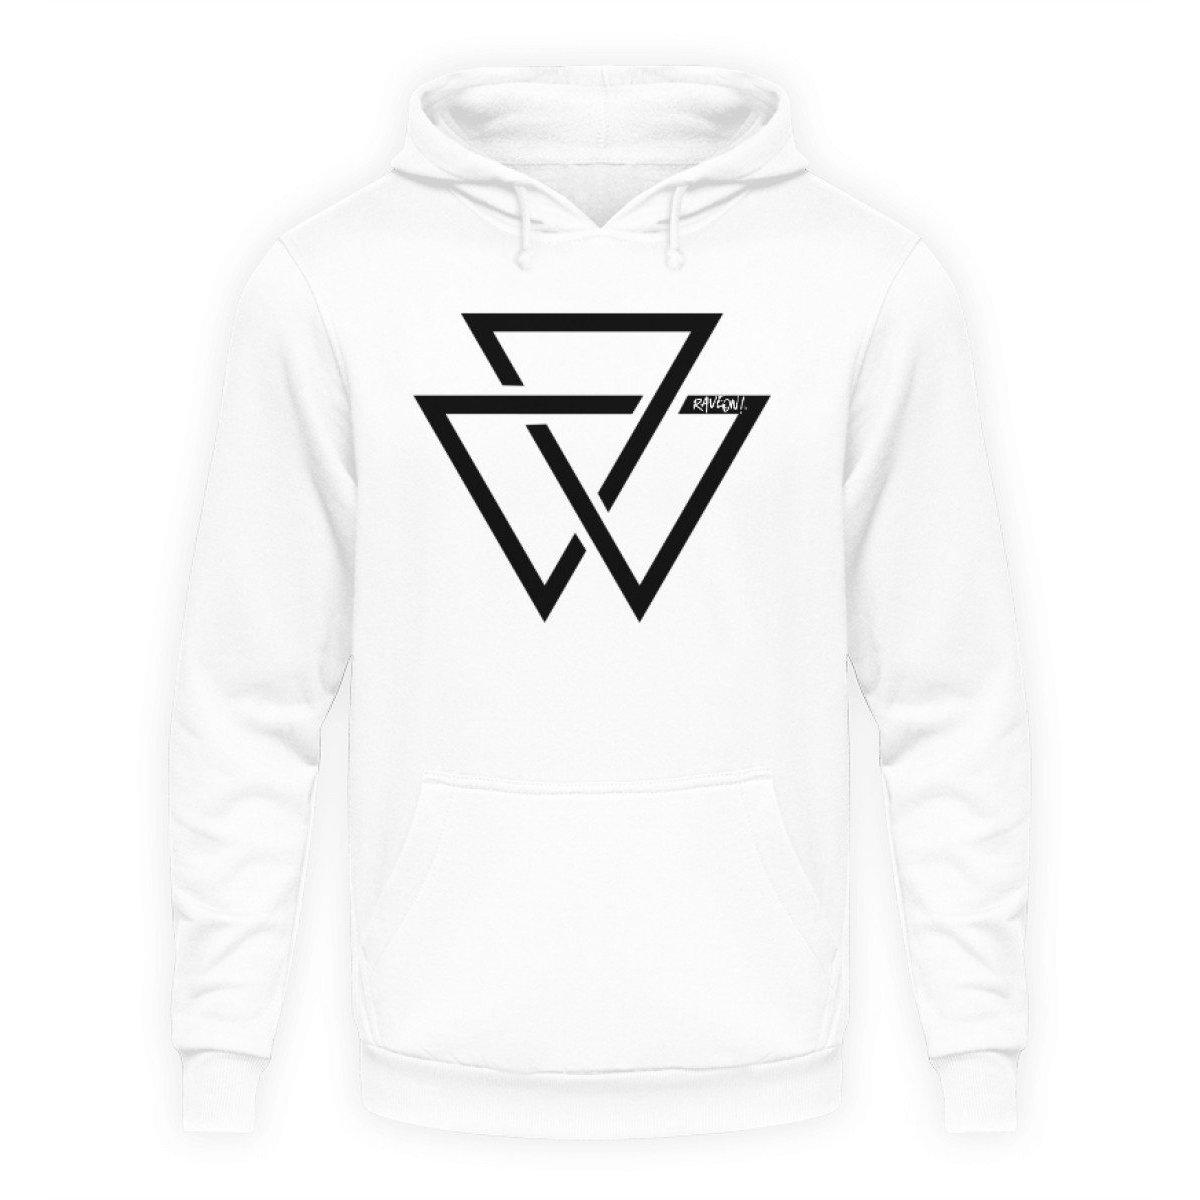 Black Triangle - Rave On!® - Unisex Kapuzenpullover Hoodie-Unisex Hoodie-Arctic White-S-Rave-On! I www.rave-on.shop I Deine Rave & Techno Szene Shop I Design - Black Triangle - Rave On!®, Dreieck, rave, triangle - Sexy Festival Streetwear , Clubwear & Raver Style